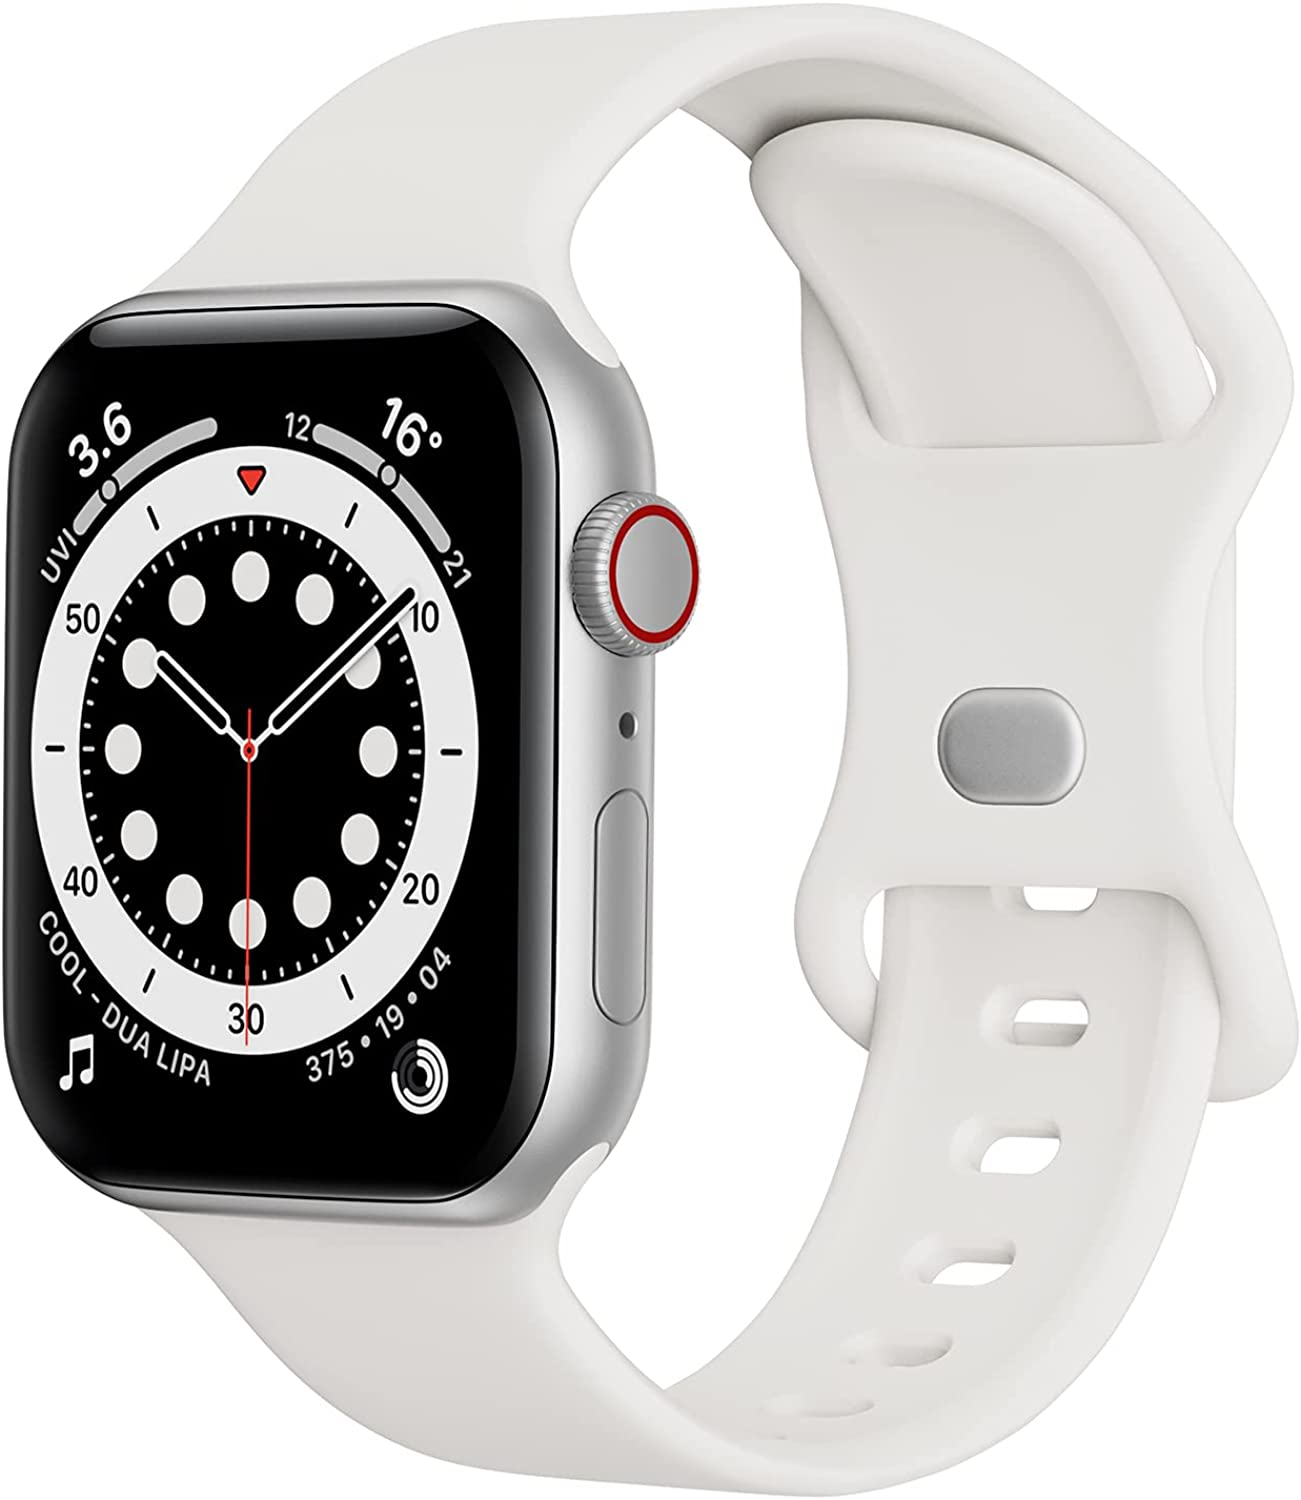 Sport Band Compatible with Apple Watch Bands 38mm 40mm iWatch band Soft Silicone Strap Wristbands Compatible with Apple Watch Series 6 5 4 3 2 1 SE Women Men (White,38/40mm,S/M)